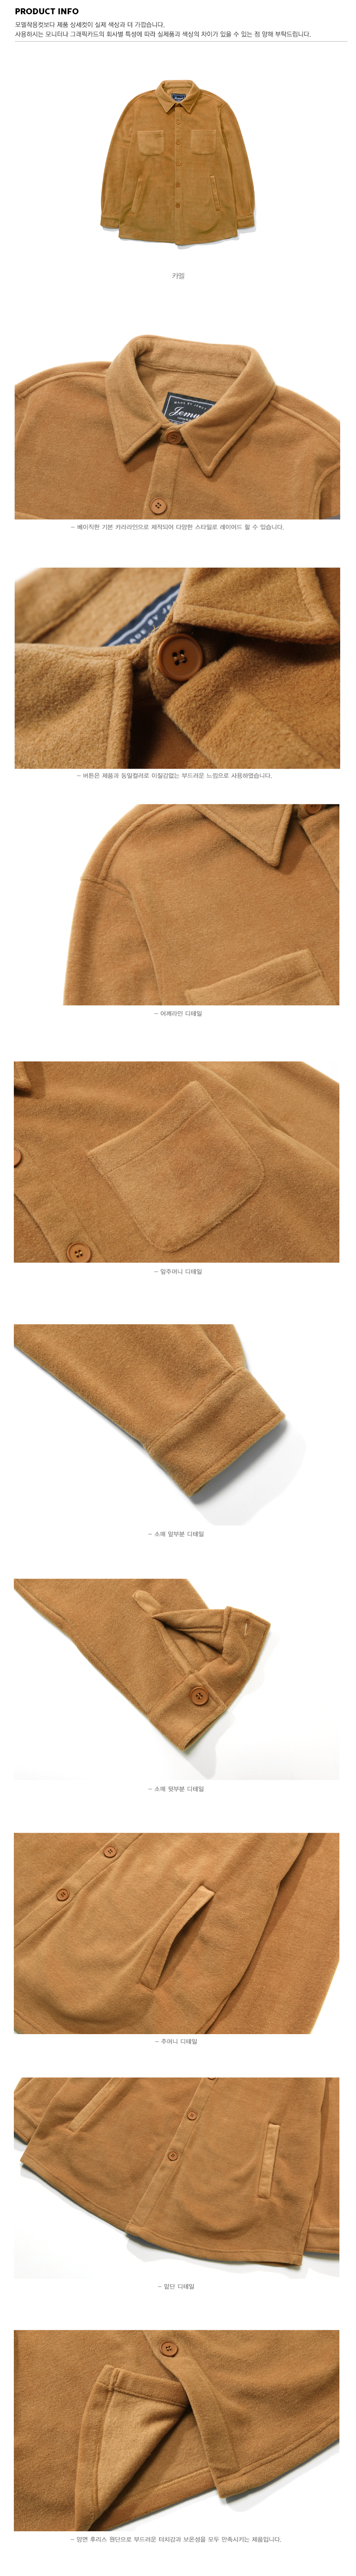 20170921_fleece_shirts_detail_camel.jpg